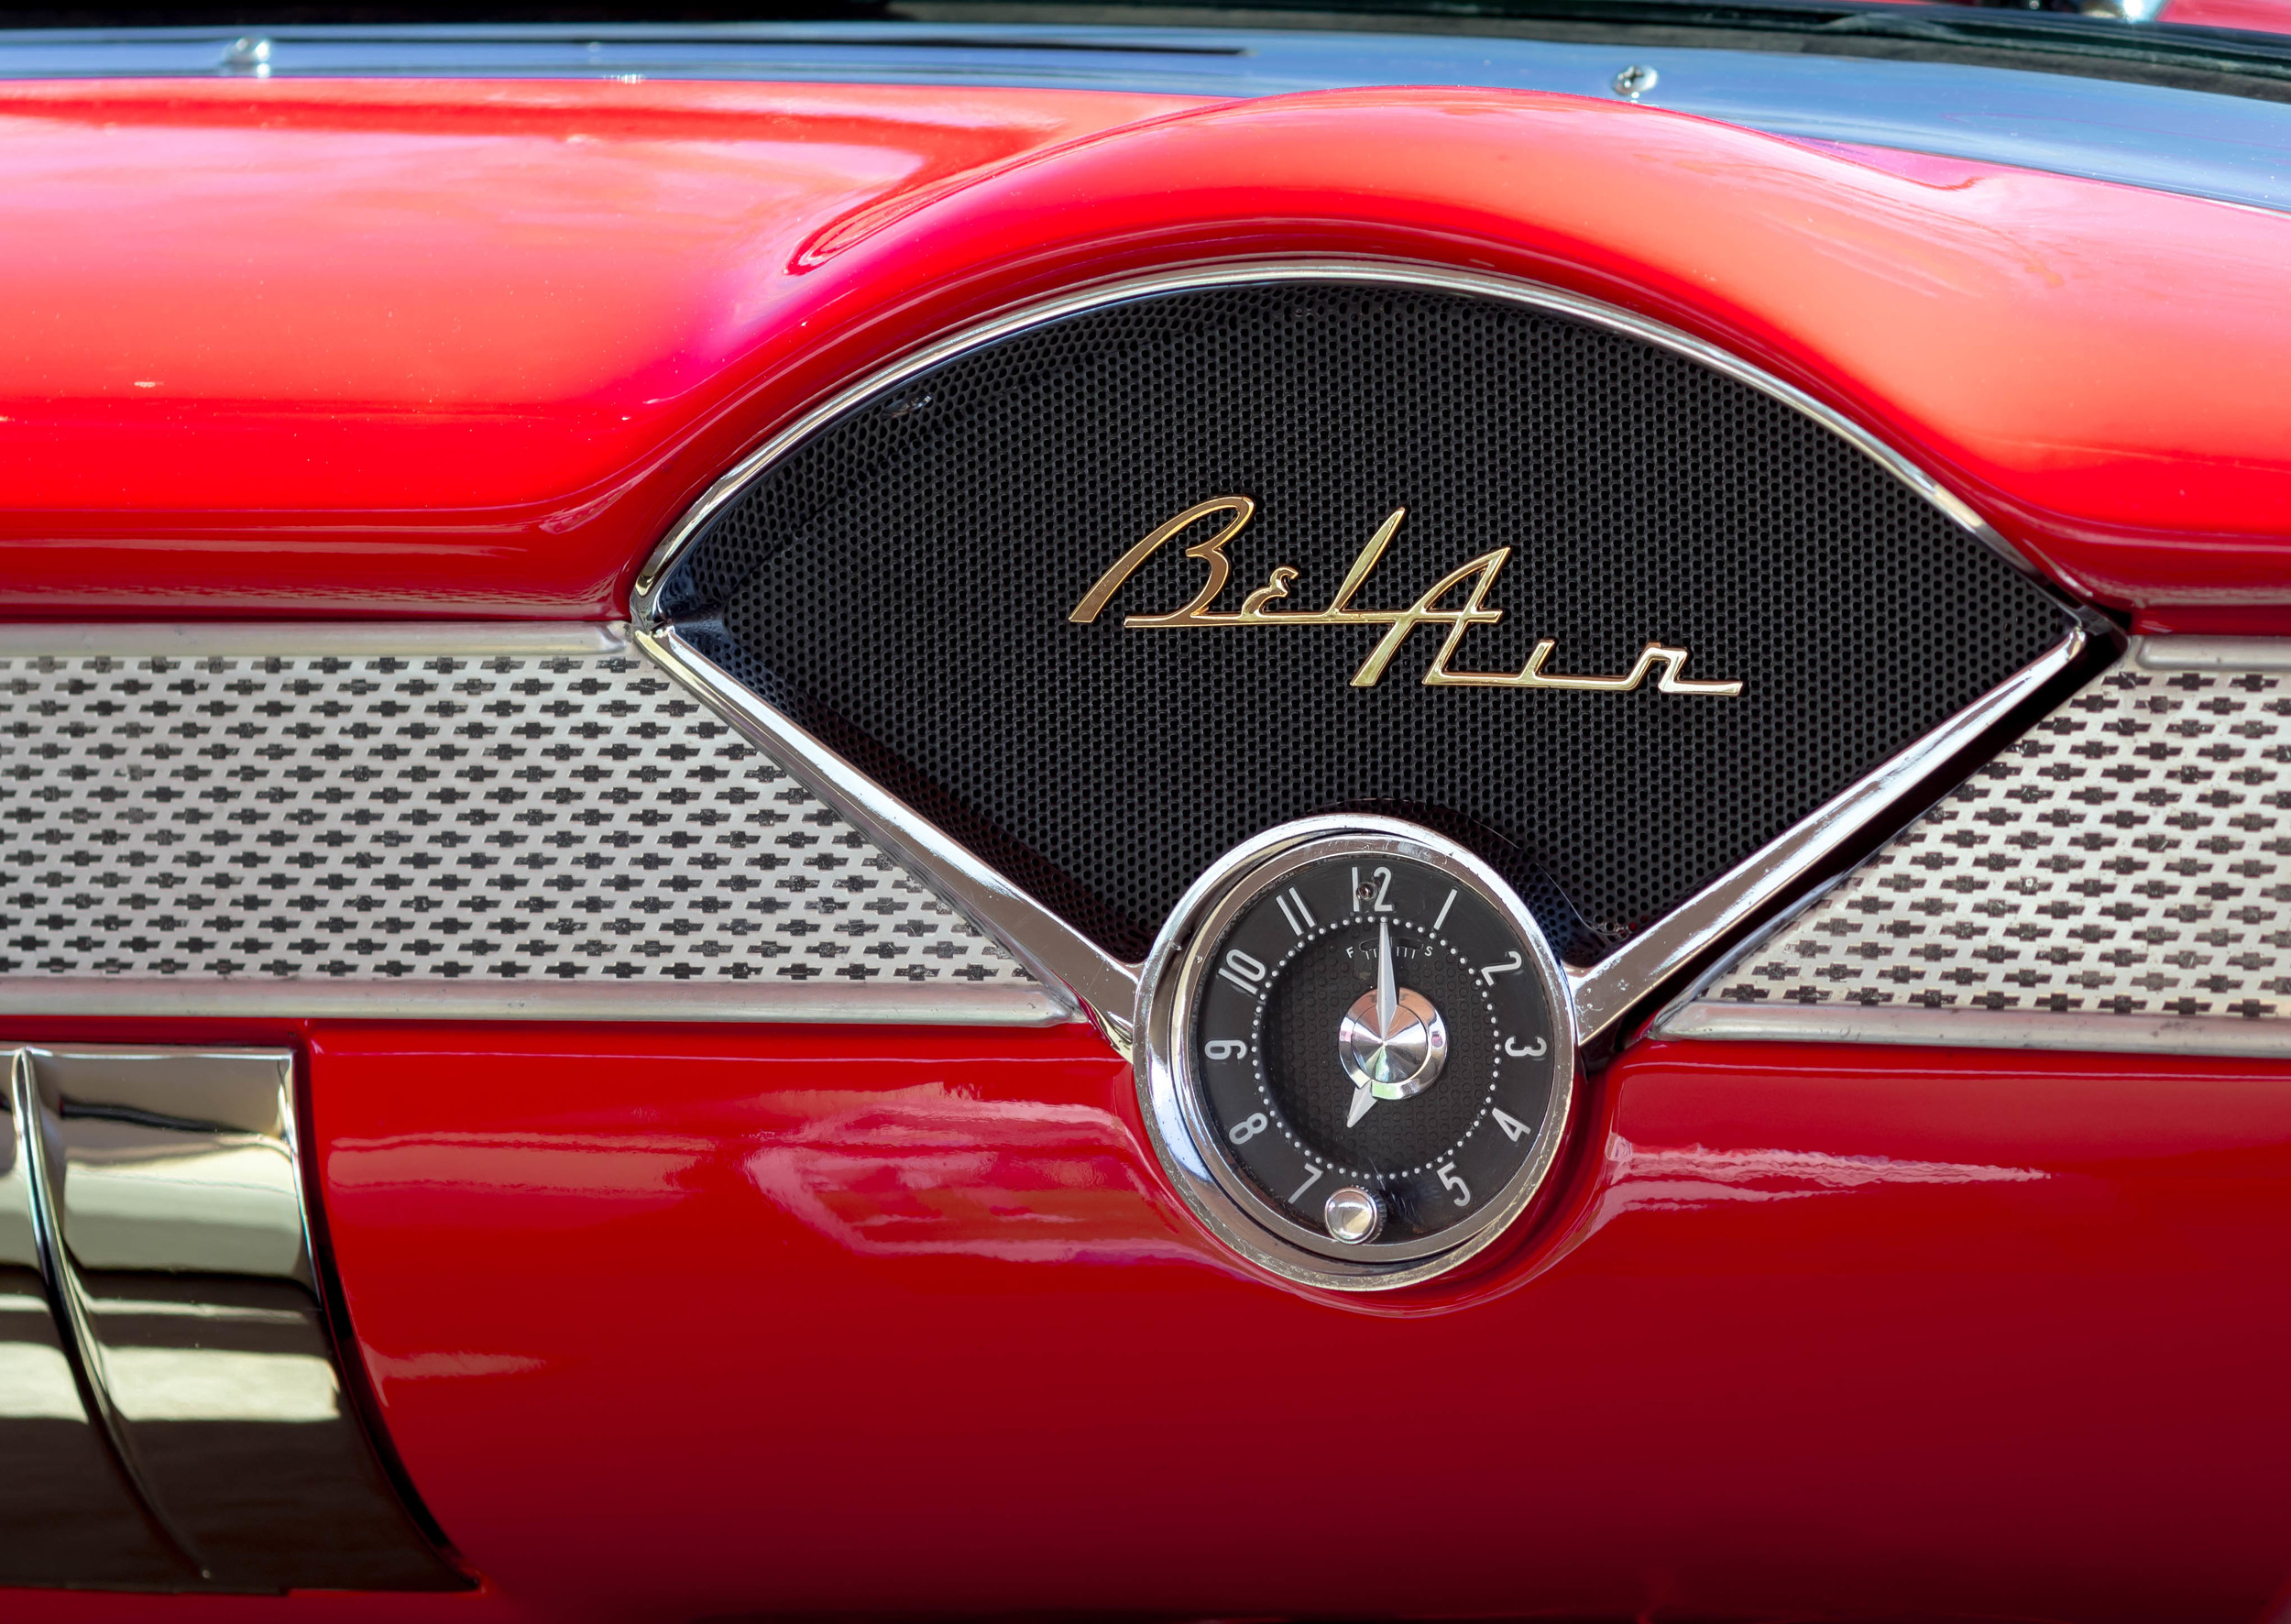 """Bel Air time alternative"" OMD 75 f1.8"